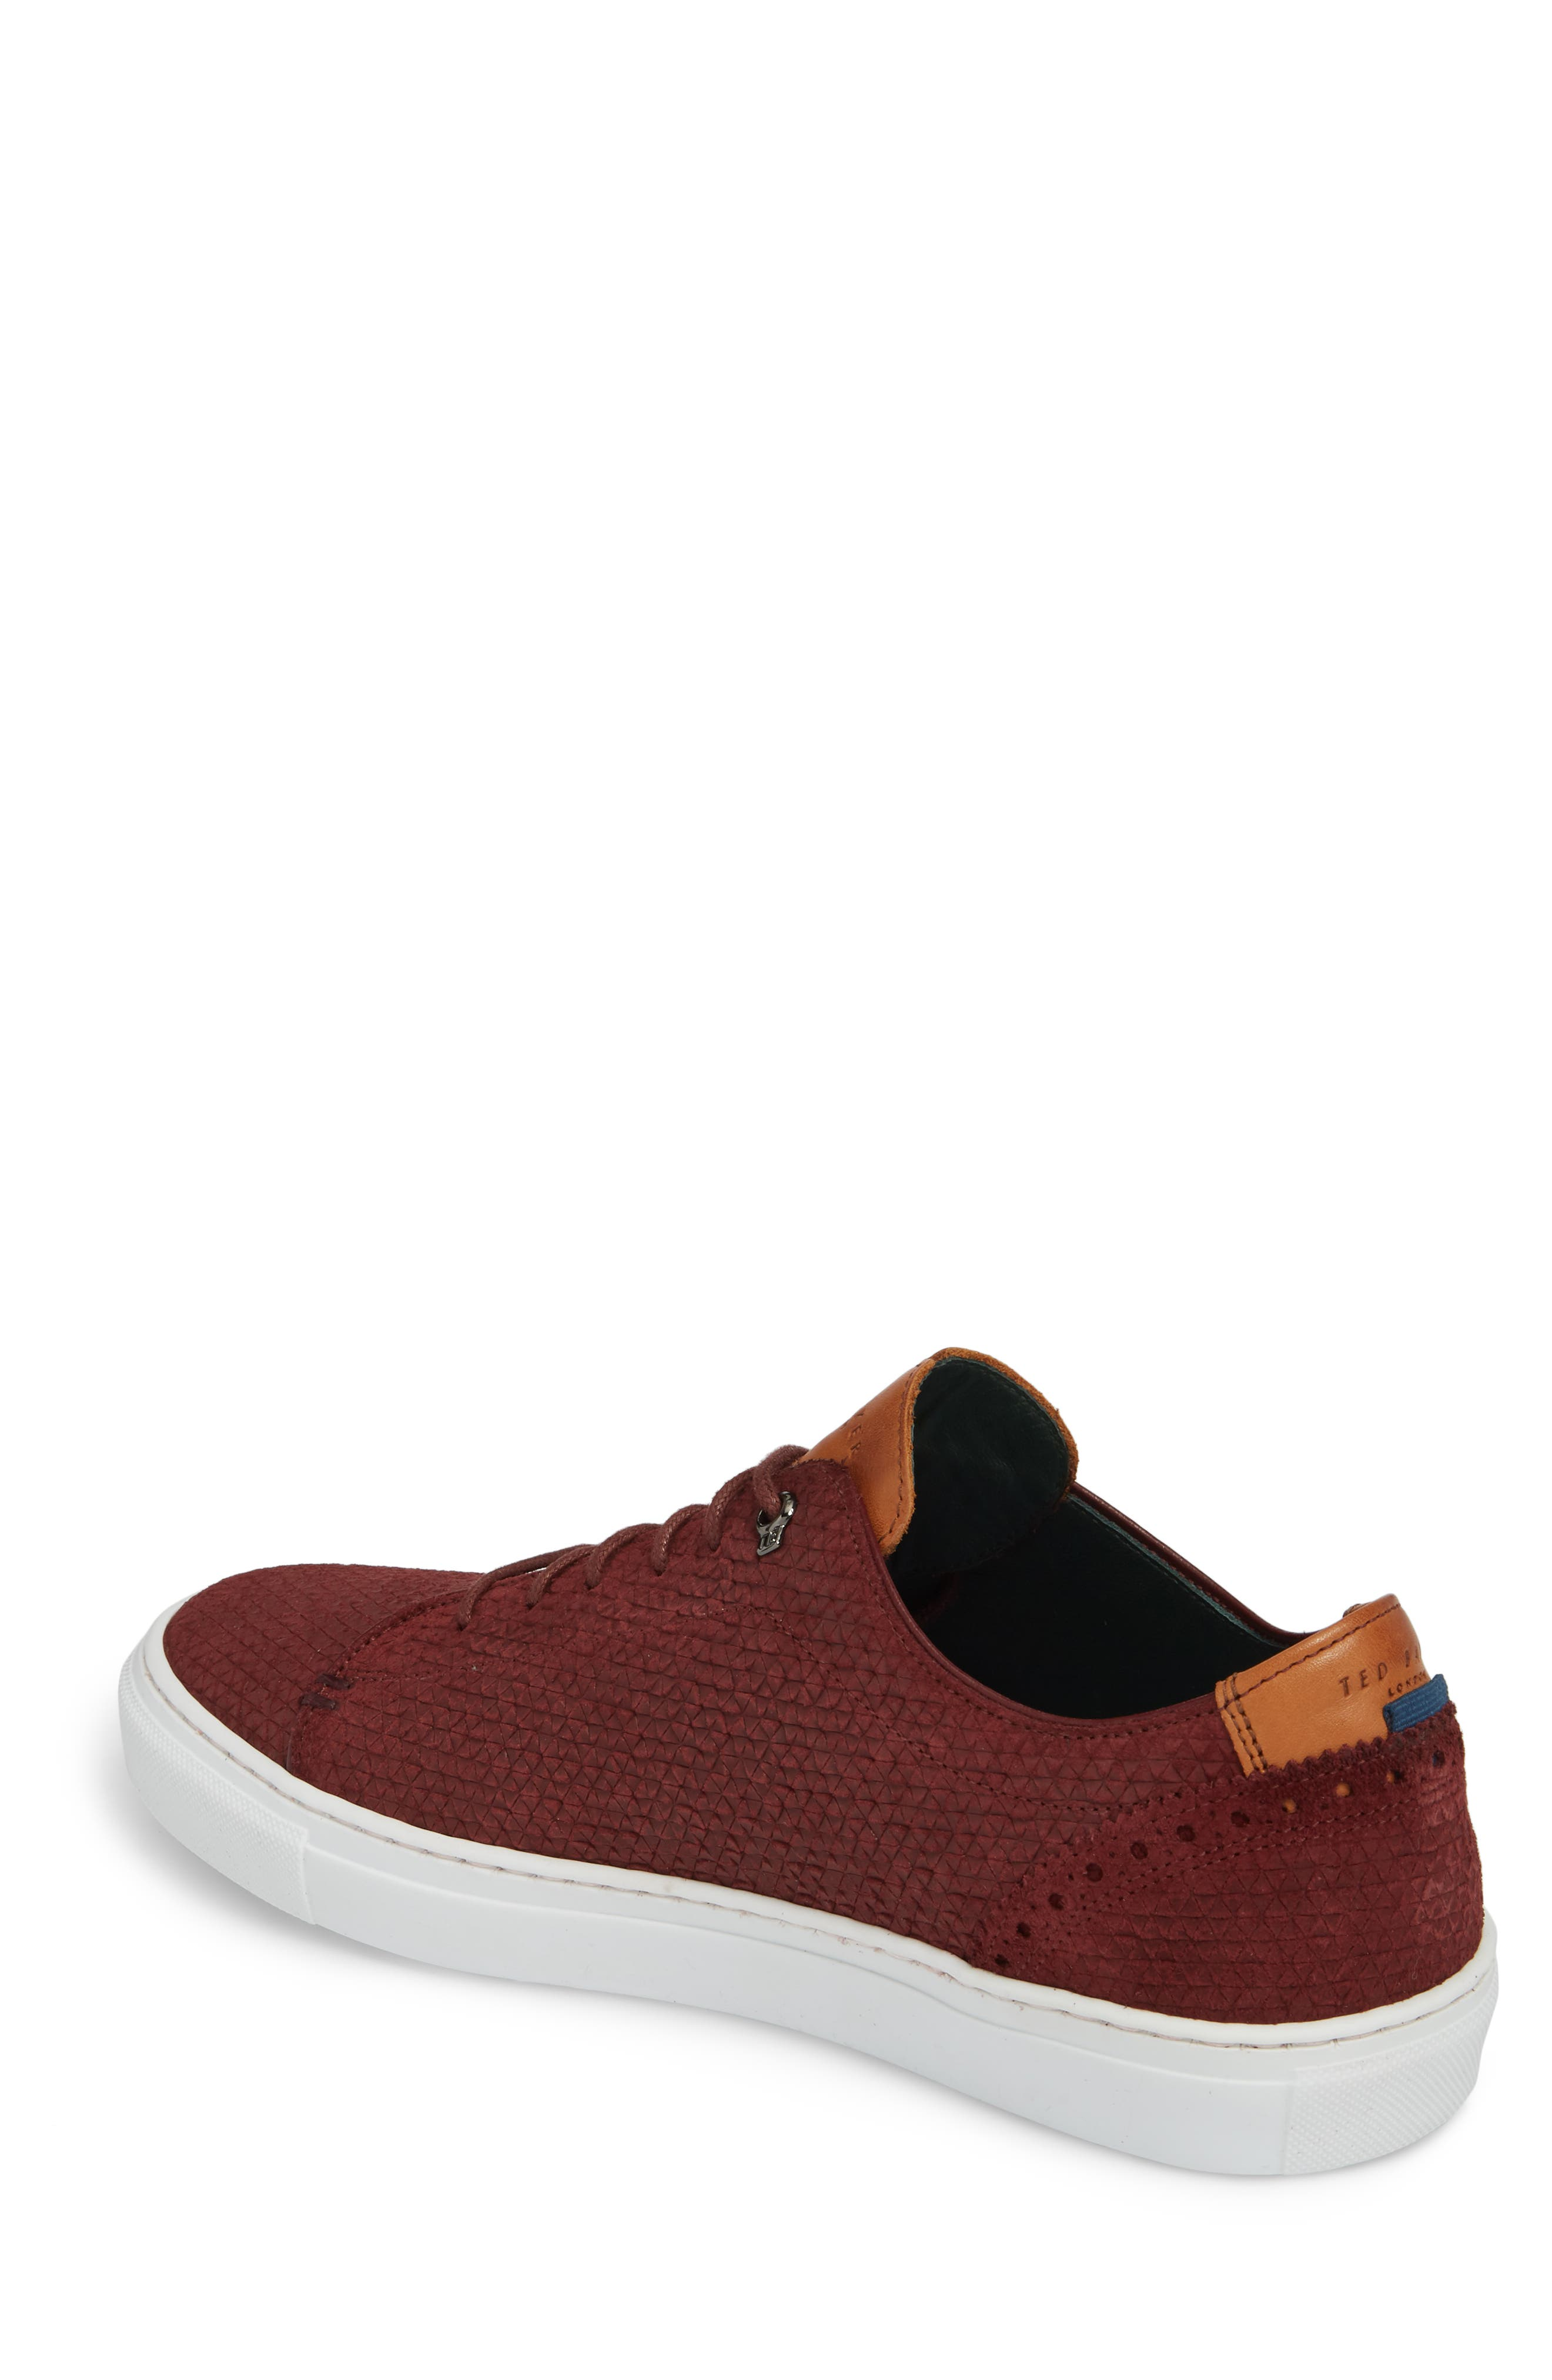 Duukes Embossed Low Top Sneaker,                             Alternate thumbnail 2, color,                             DARK PINK EMBOSSED SUEDE